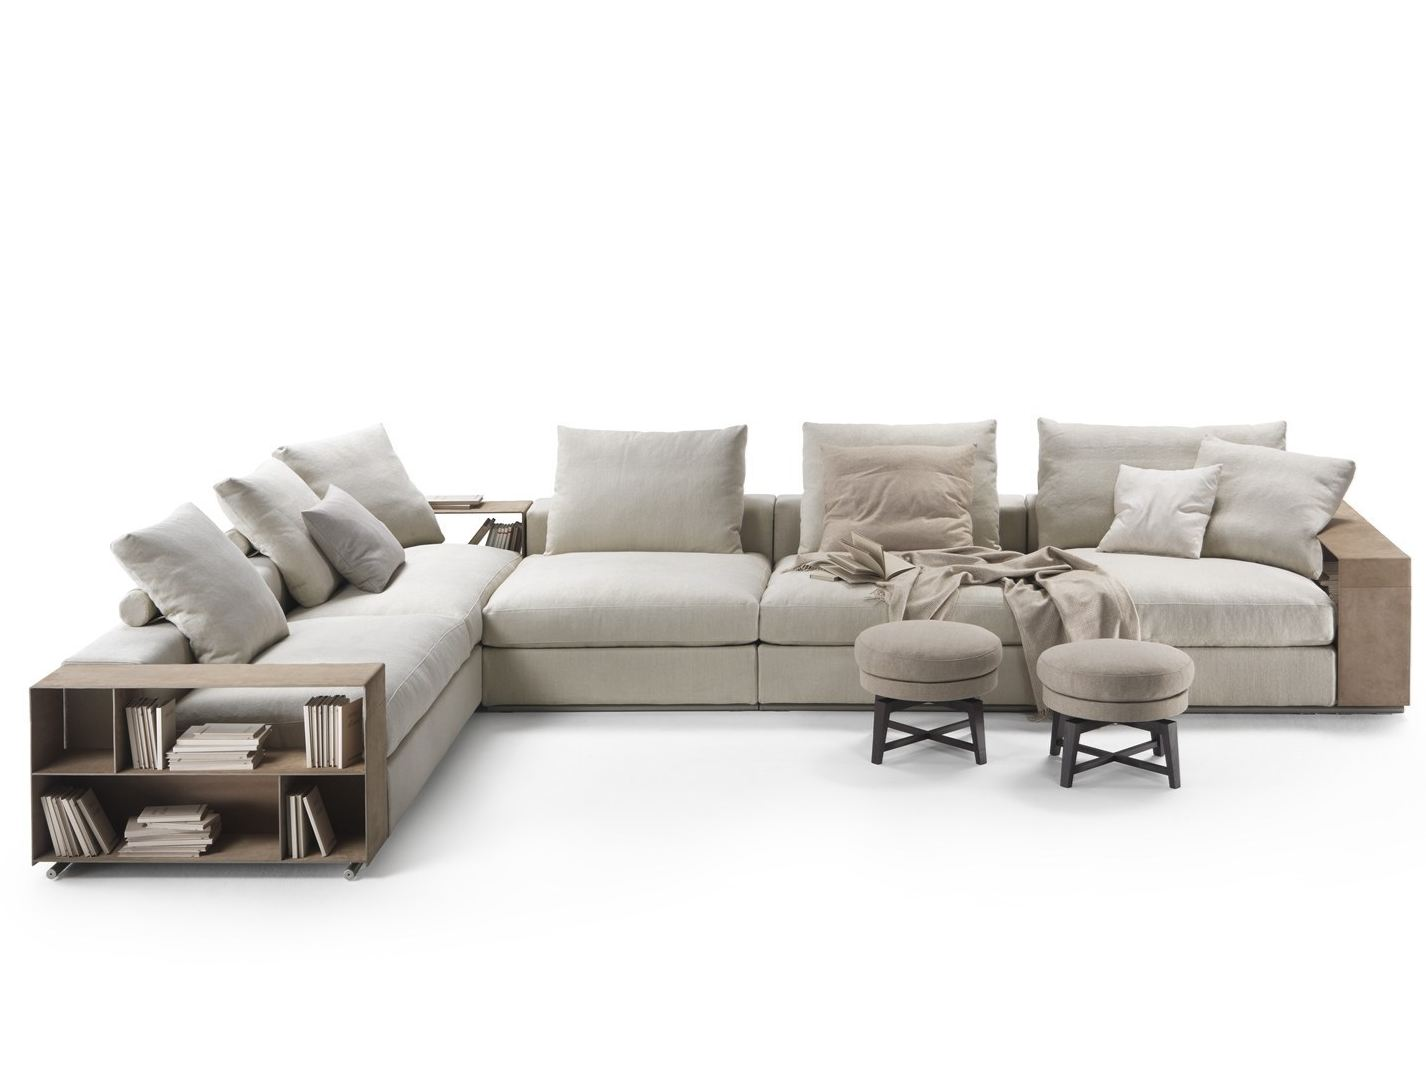 groundpiece-sectional-sofa-flexform-125442-relac57dd